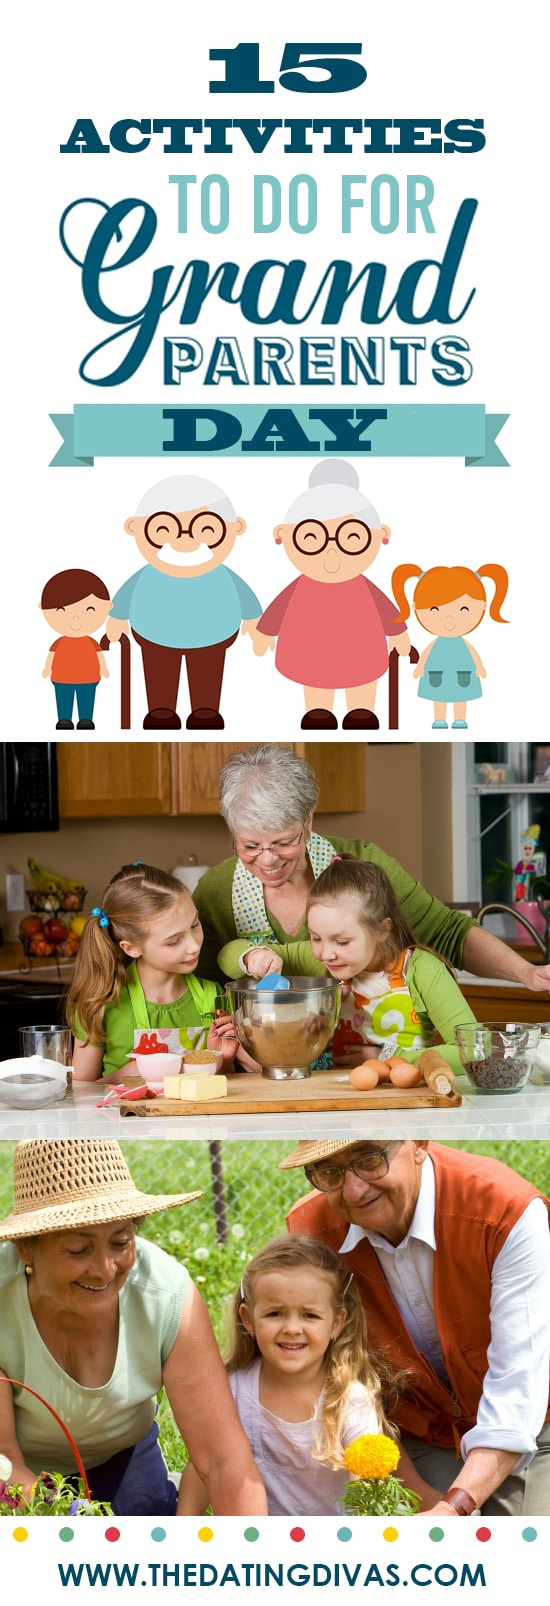 Activities to do with Grandparents on Grandparents Day